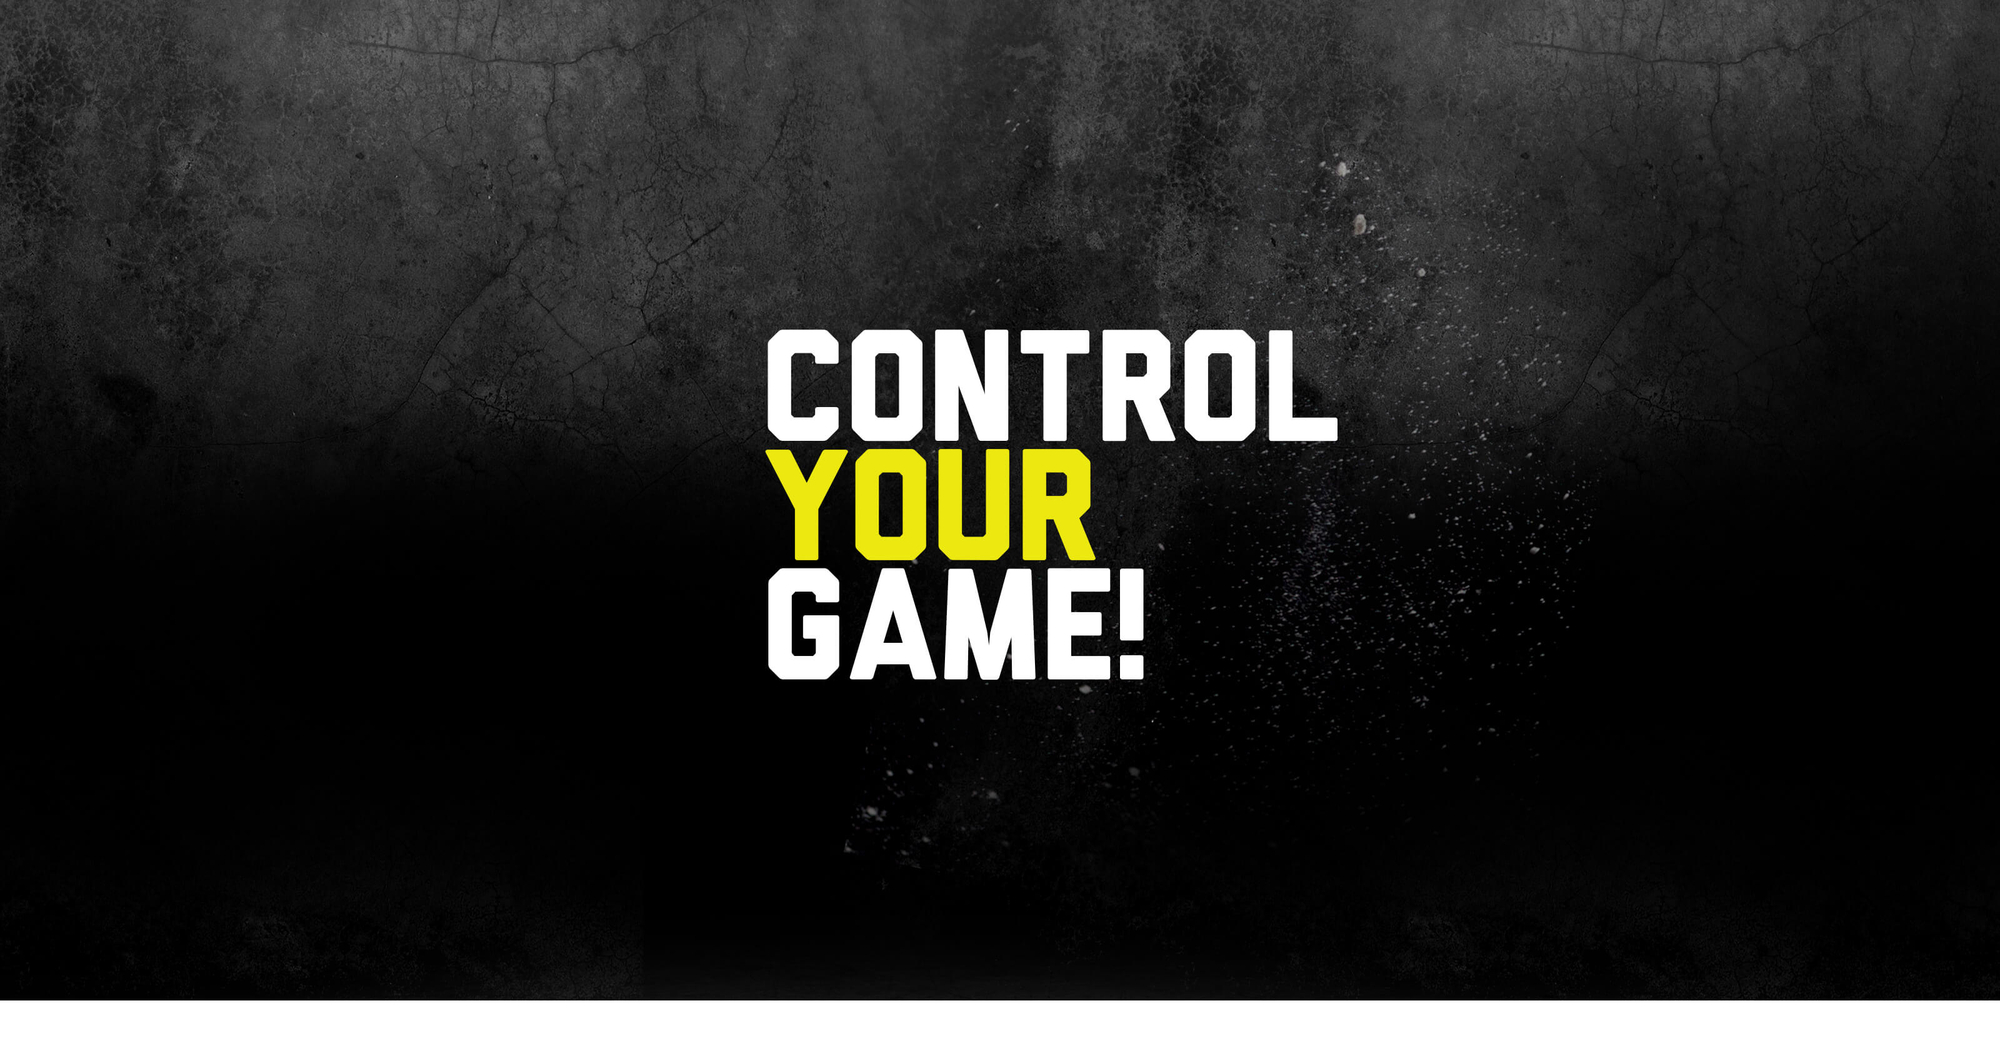 Control your game